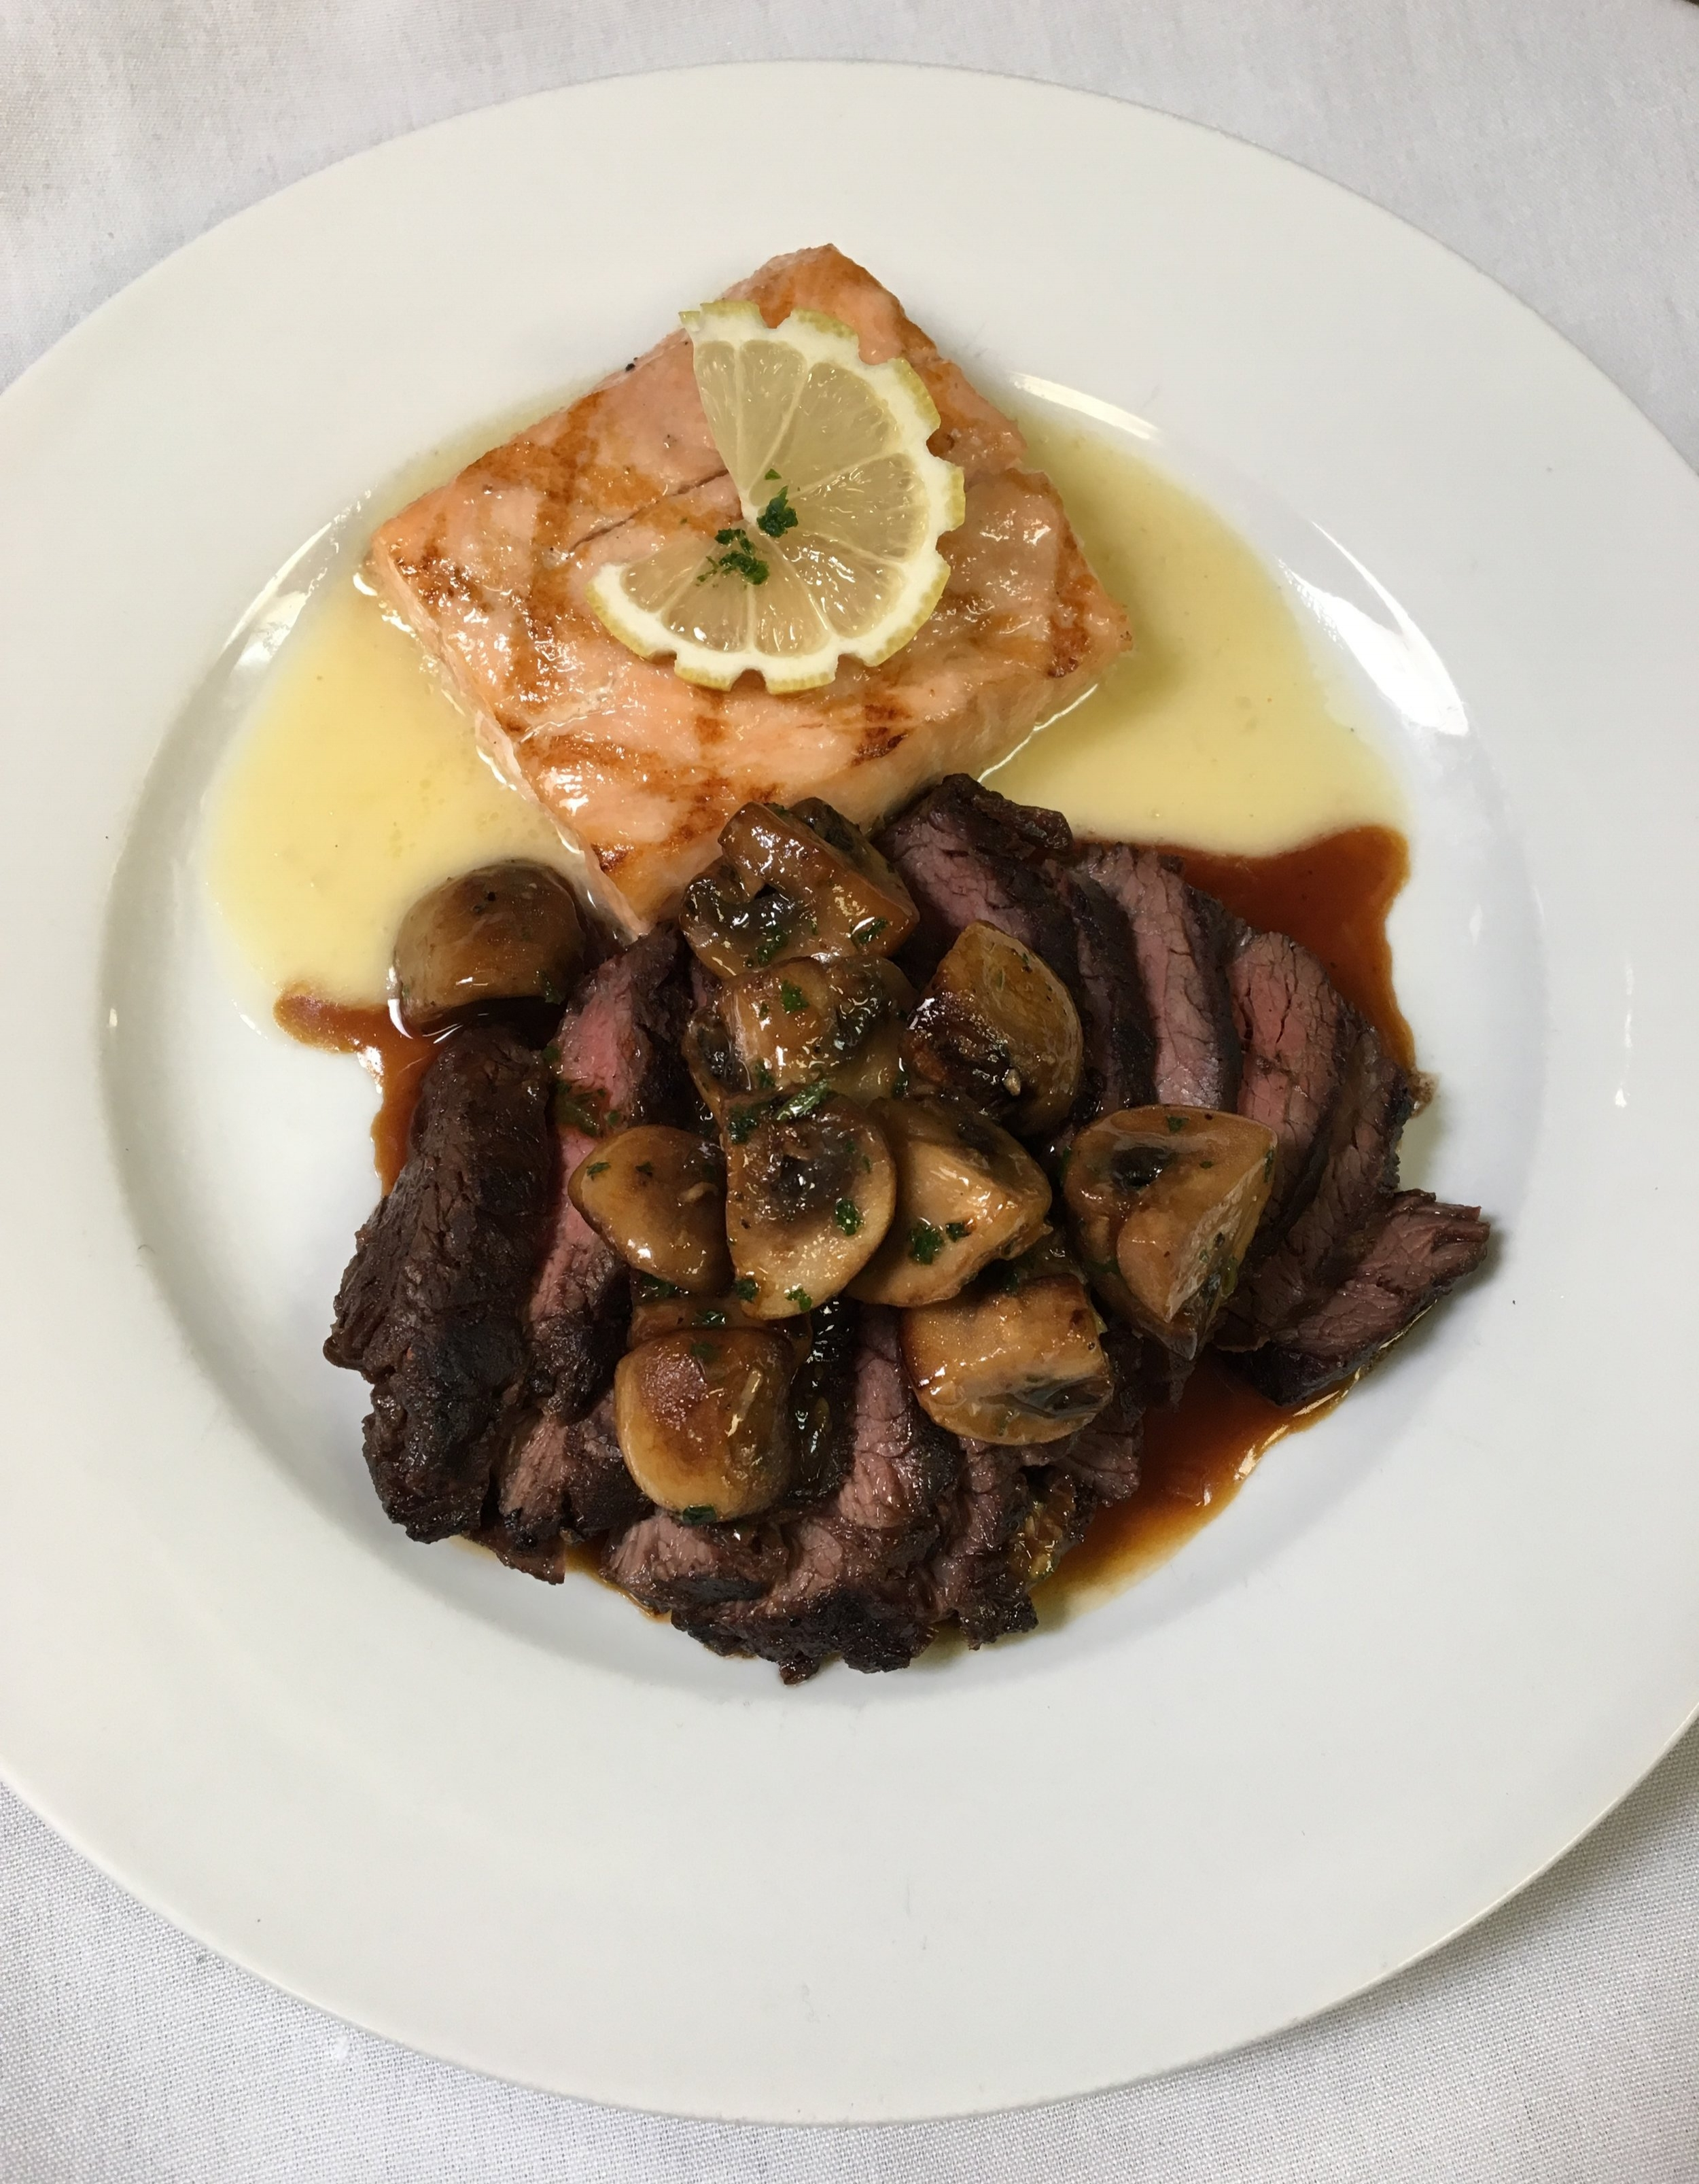 Skirt Steak with Sauteed Mushroom and Grilled Salmon